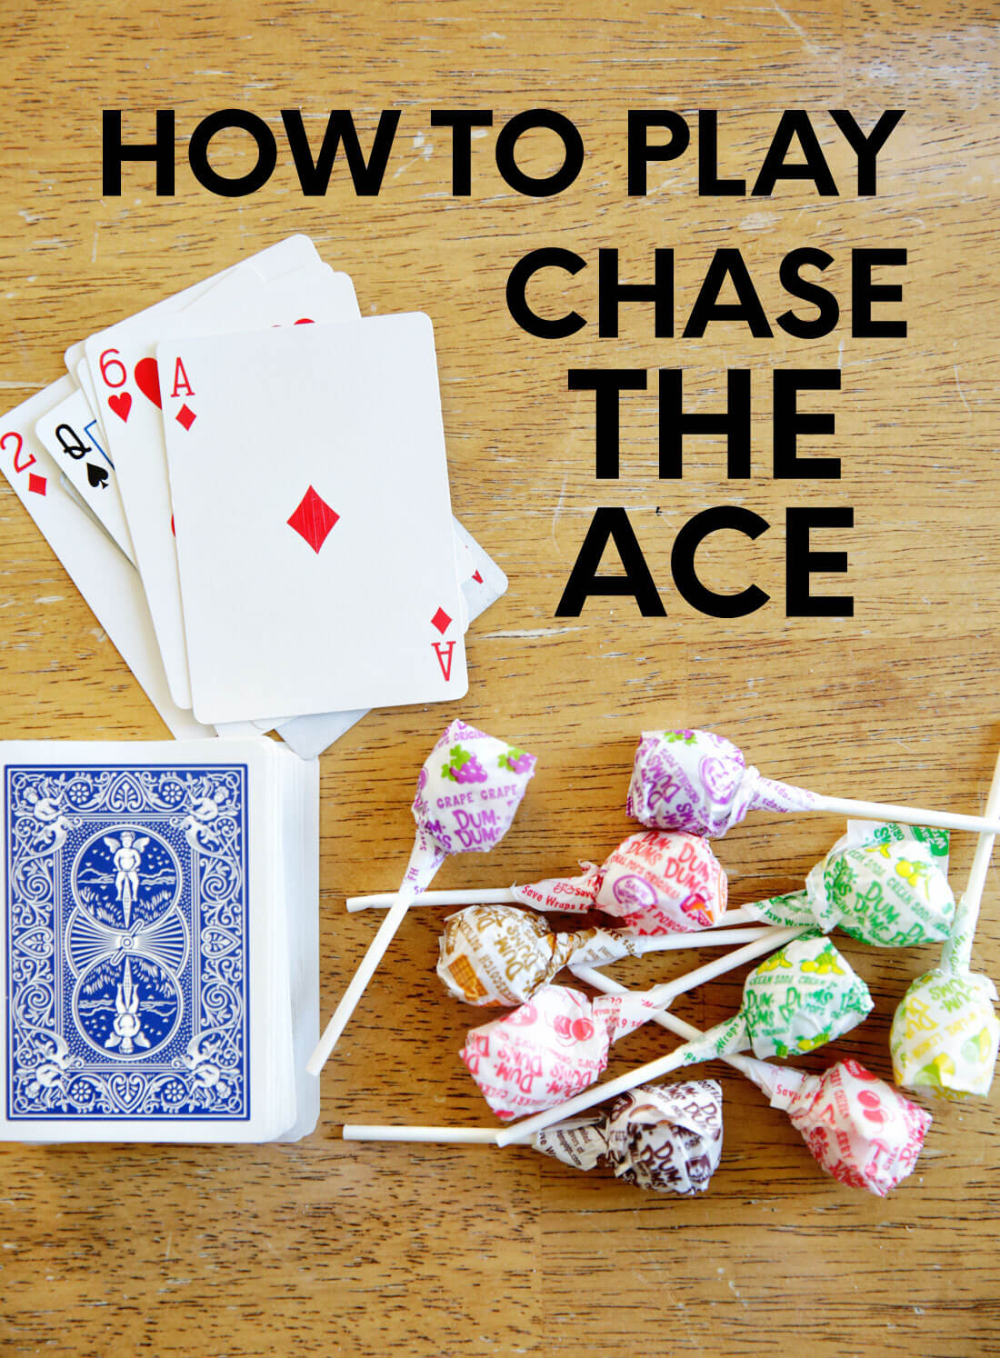 How To Play Chase The Ace Family Fun Games Family Card Games Card Games For Kids